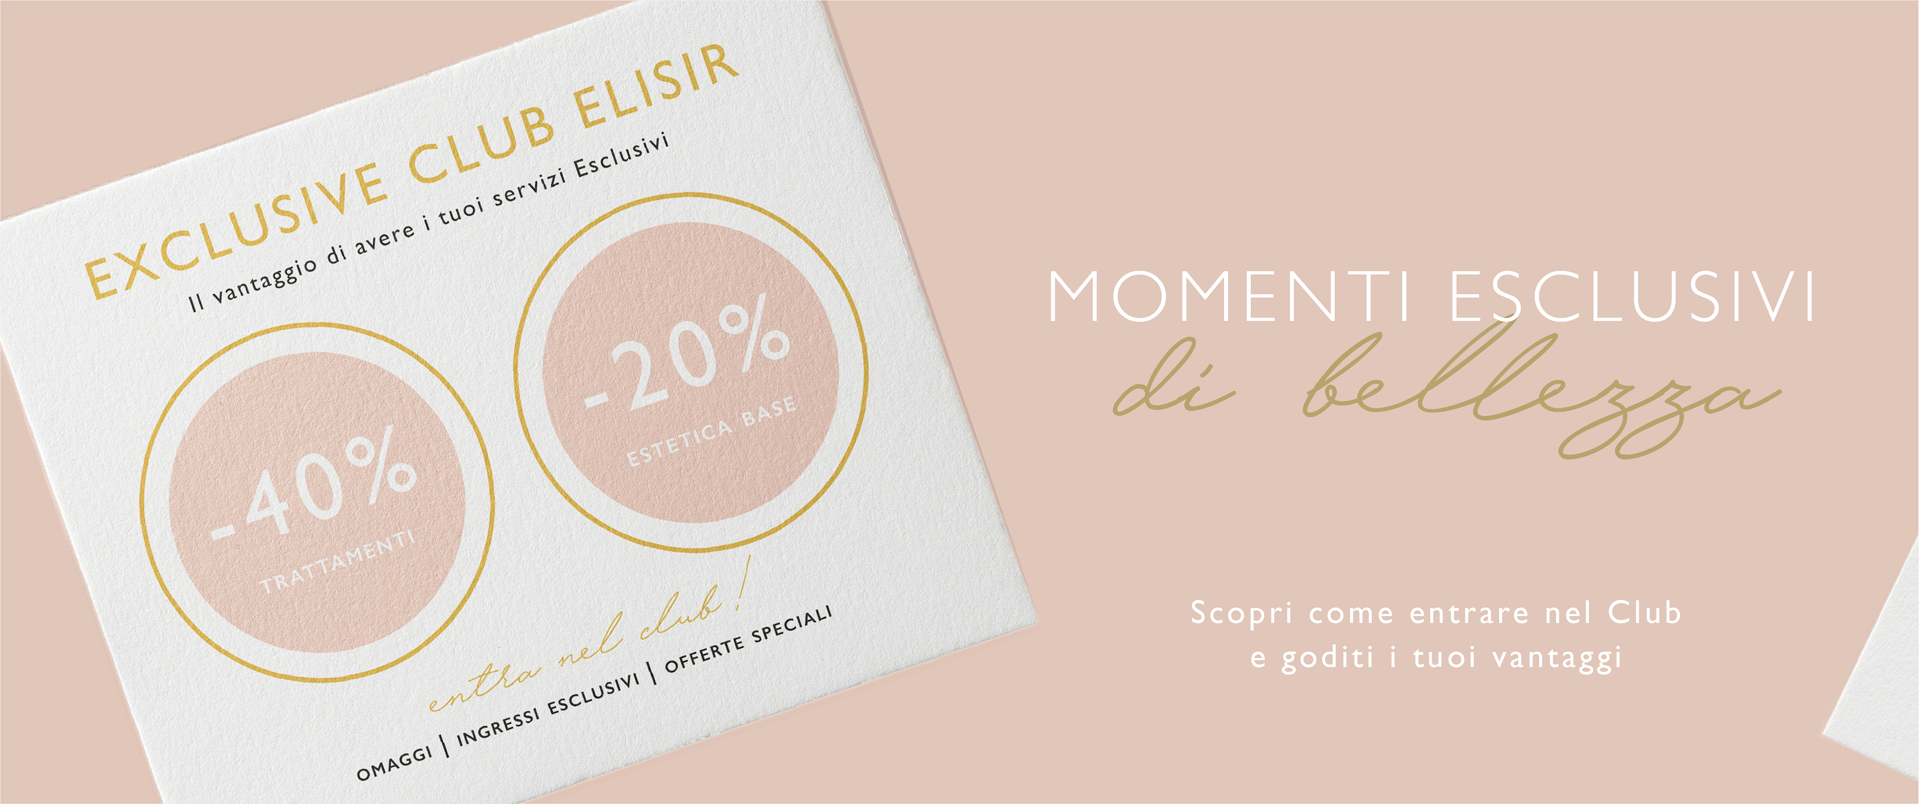 Exclusive Club - Elisir Essential Bauty